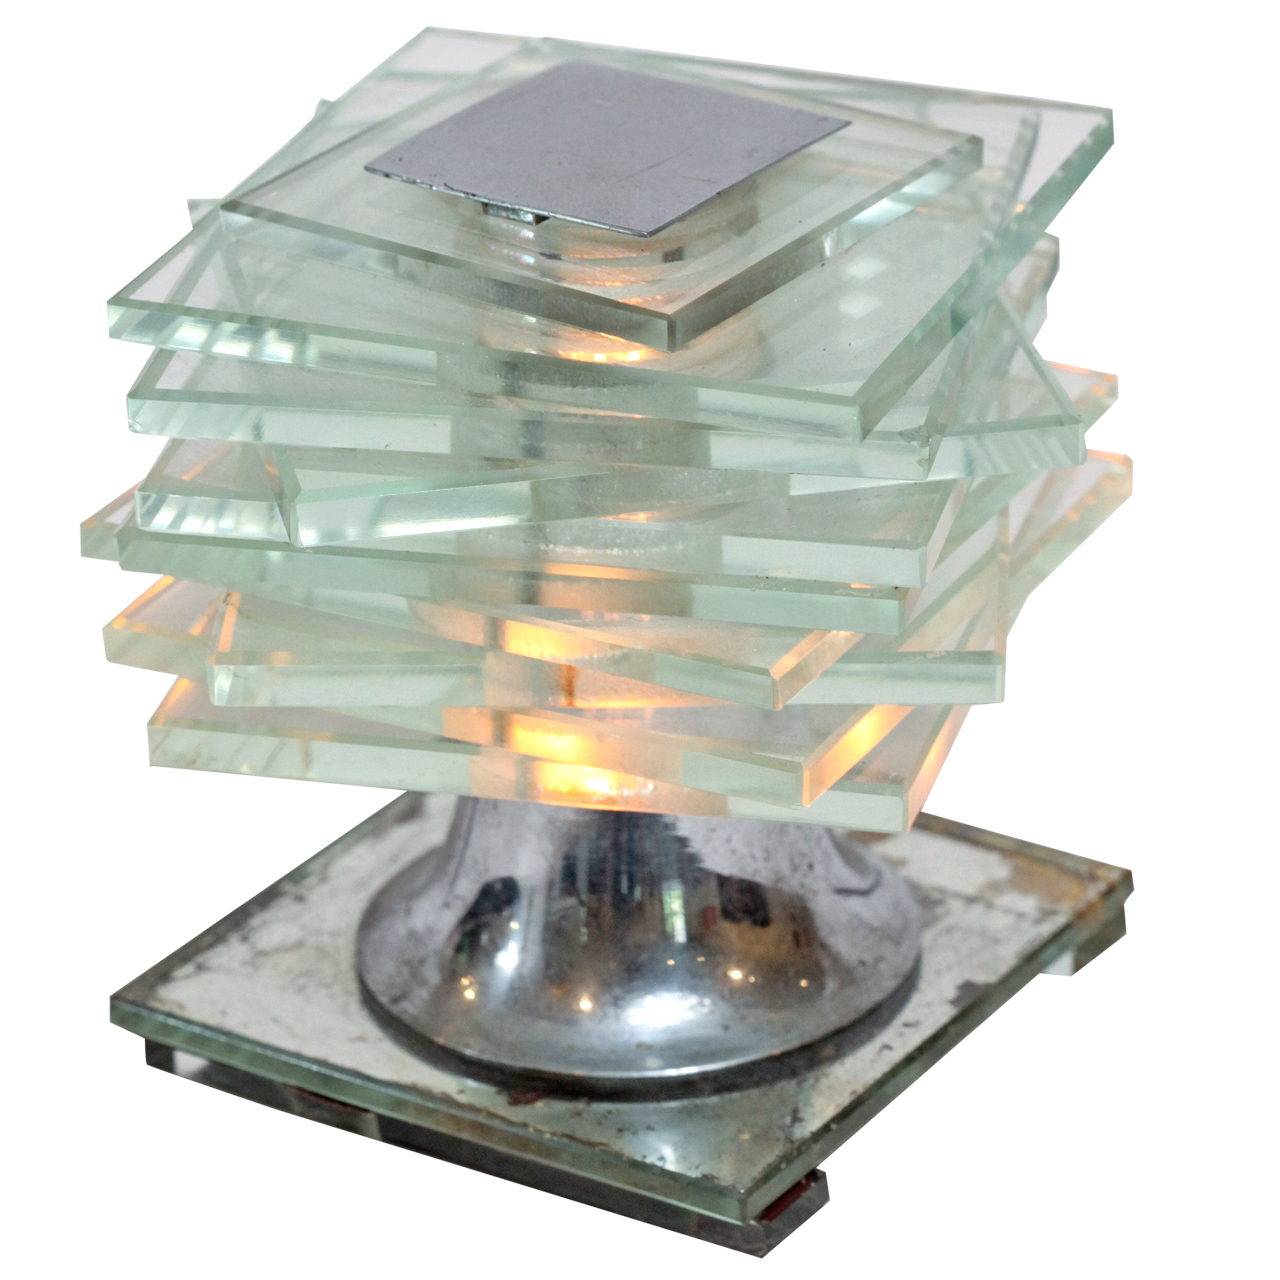 Desny table lamp.jpg